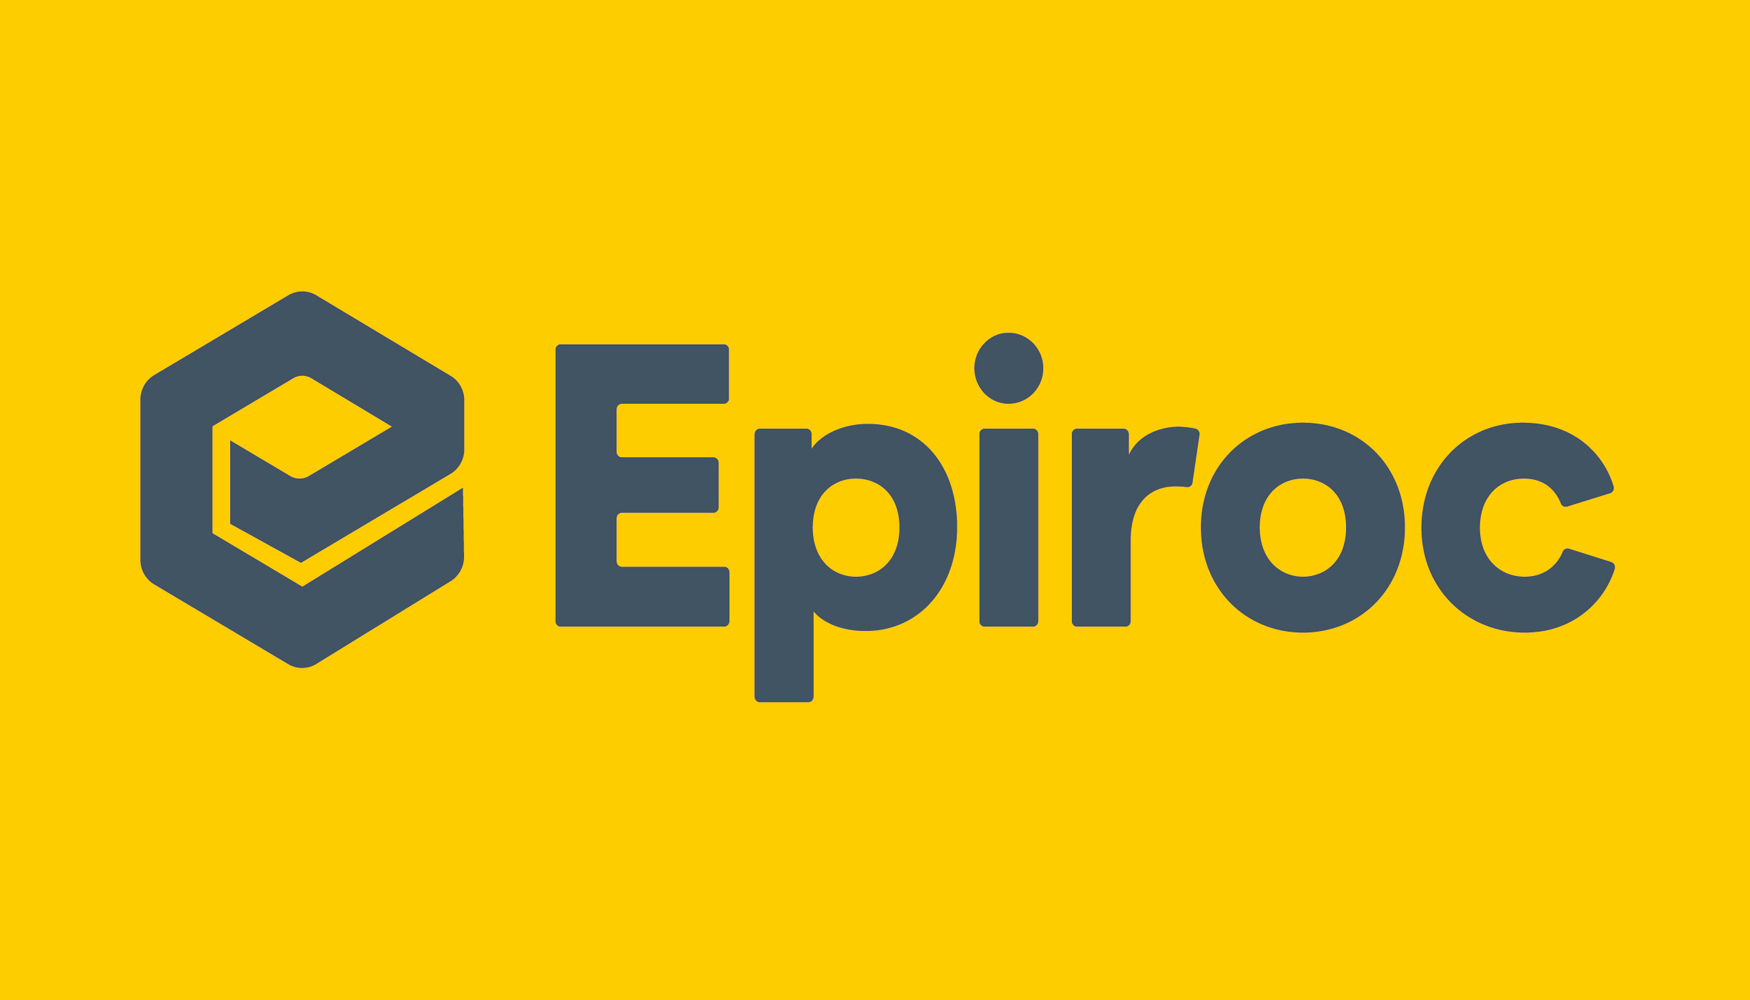 Epiroc created as Atlas Copco splits into separate mining-focused industrial businesses